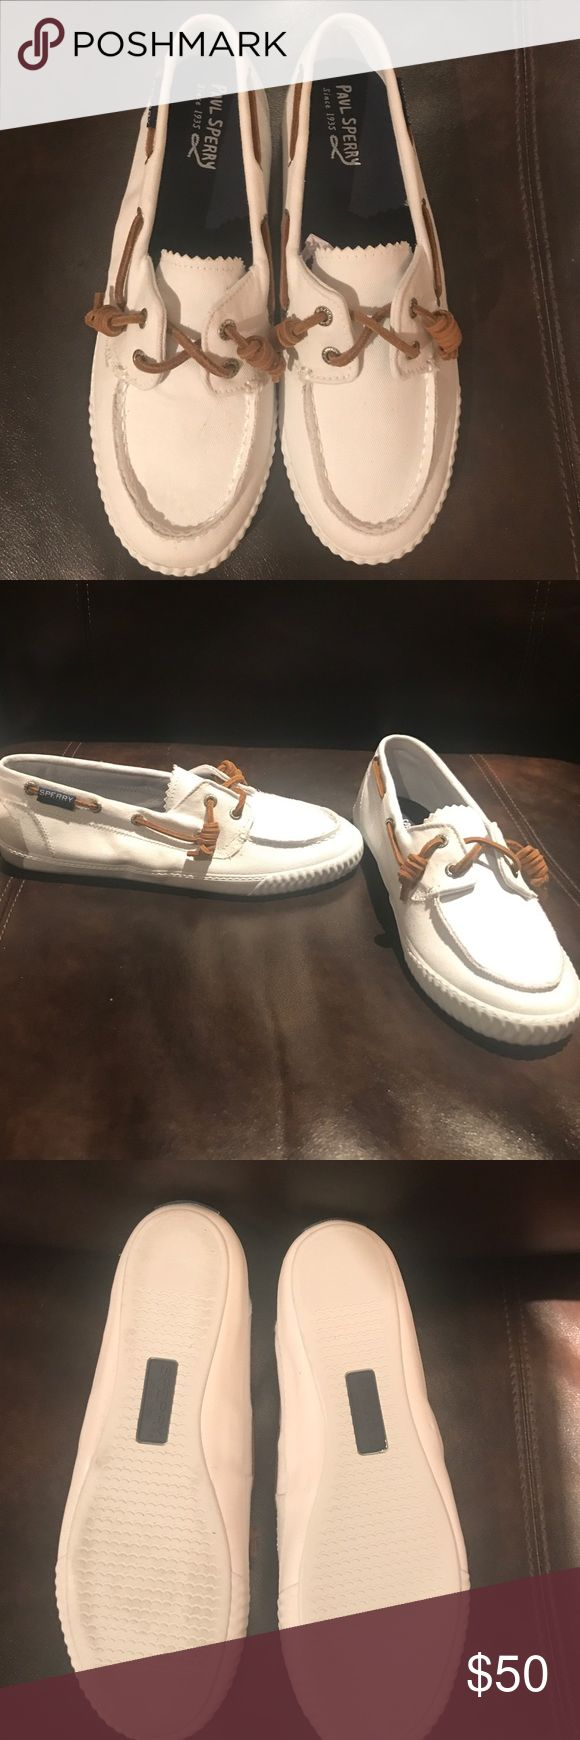 All white Sperrys Brand new never worn saywl away washed away white sperry boat shoes, comes with box. Has rubber soles, i can ship this nextbday. For more pictures please comment and let me know, i only tried one on to see how it would look like Sperry Shoes